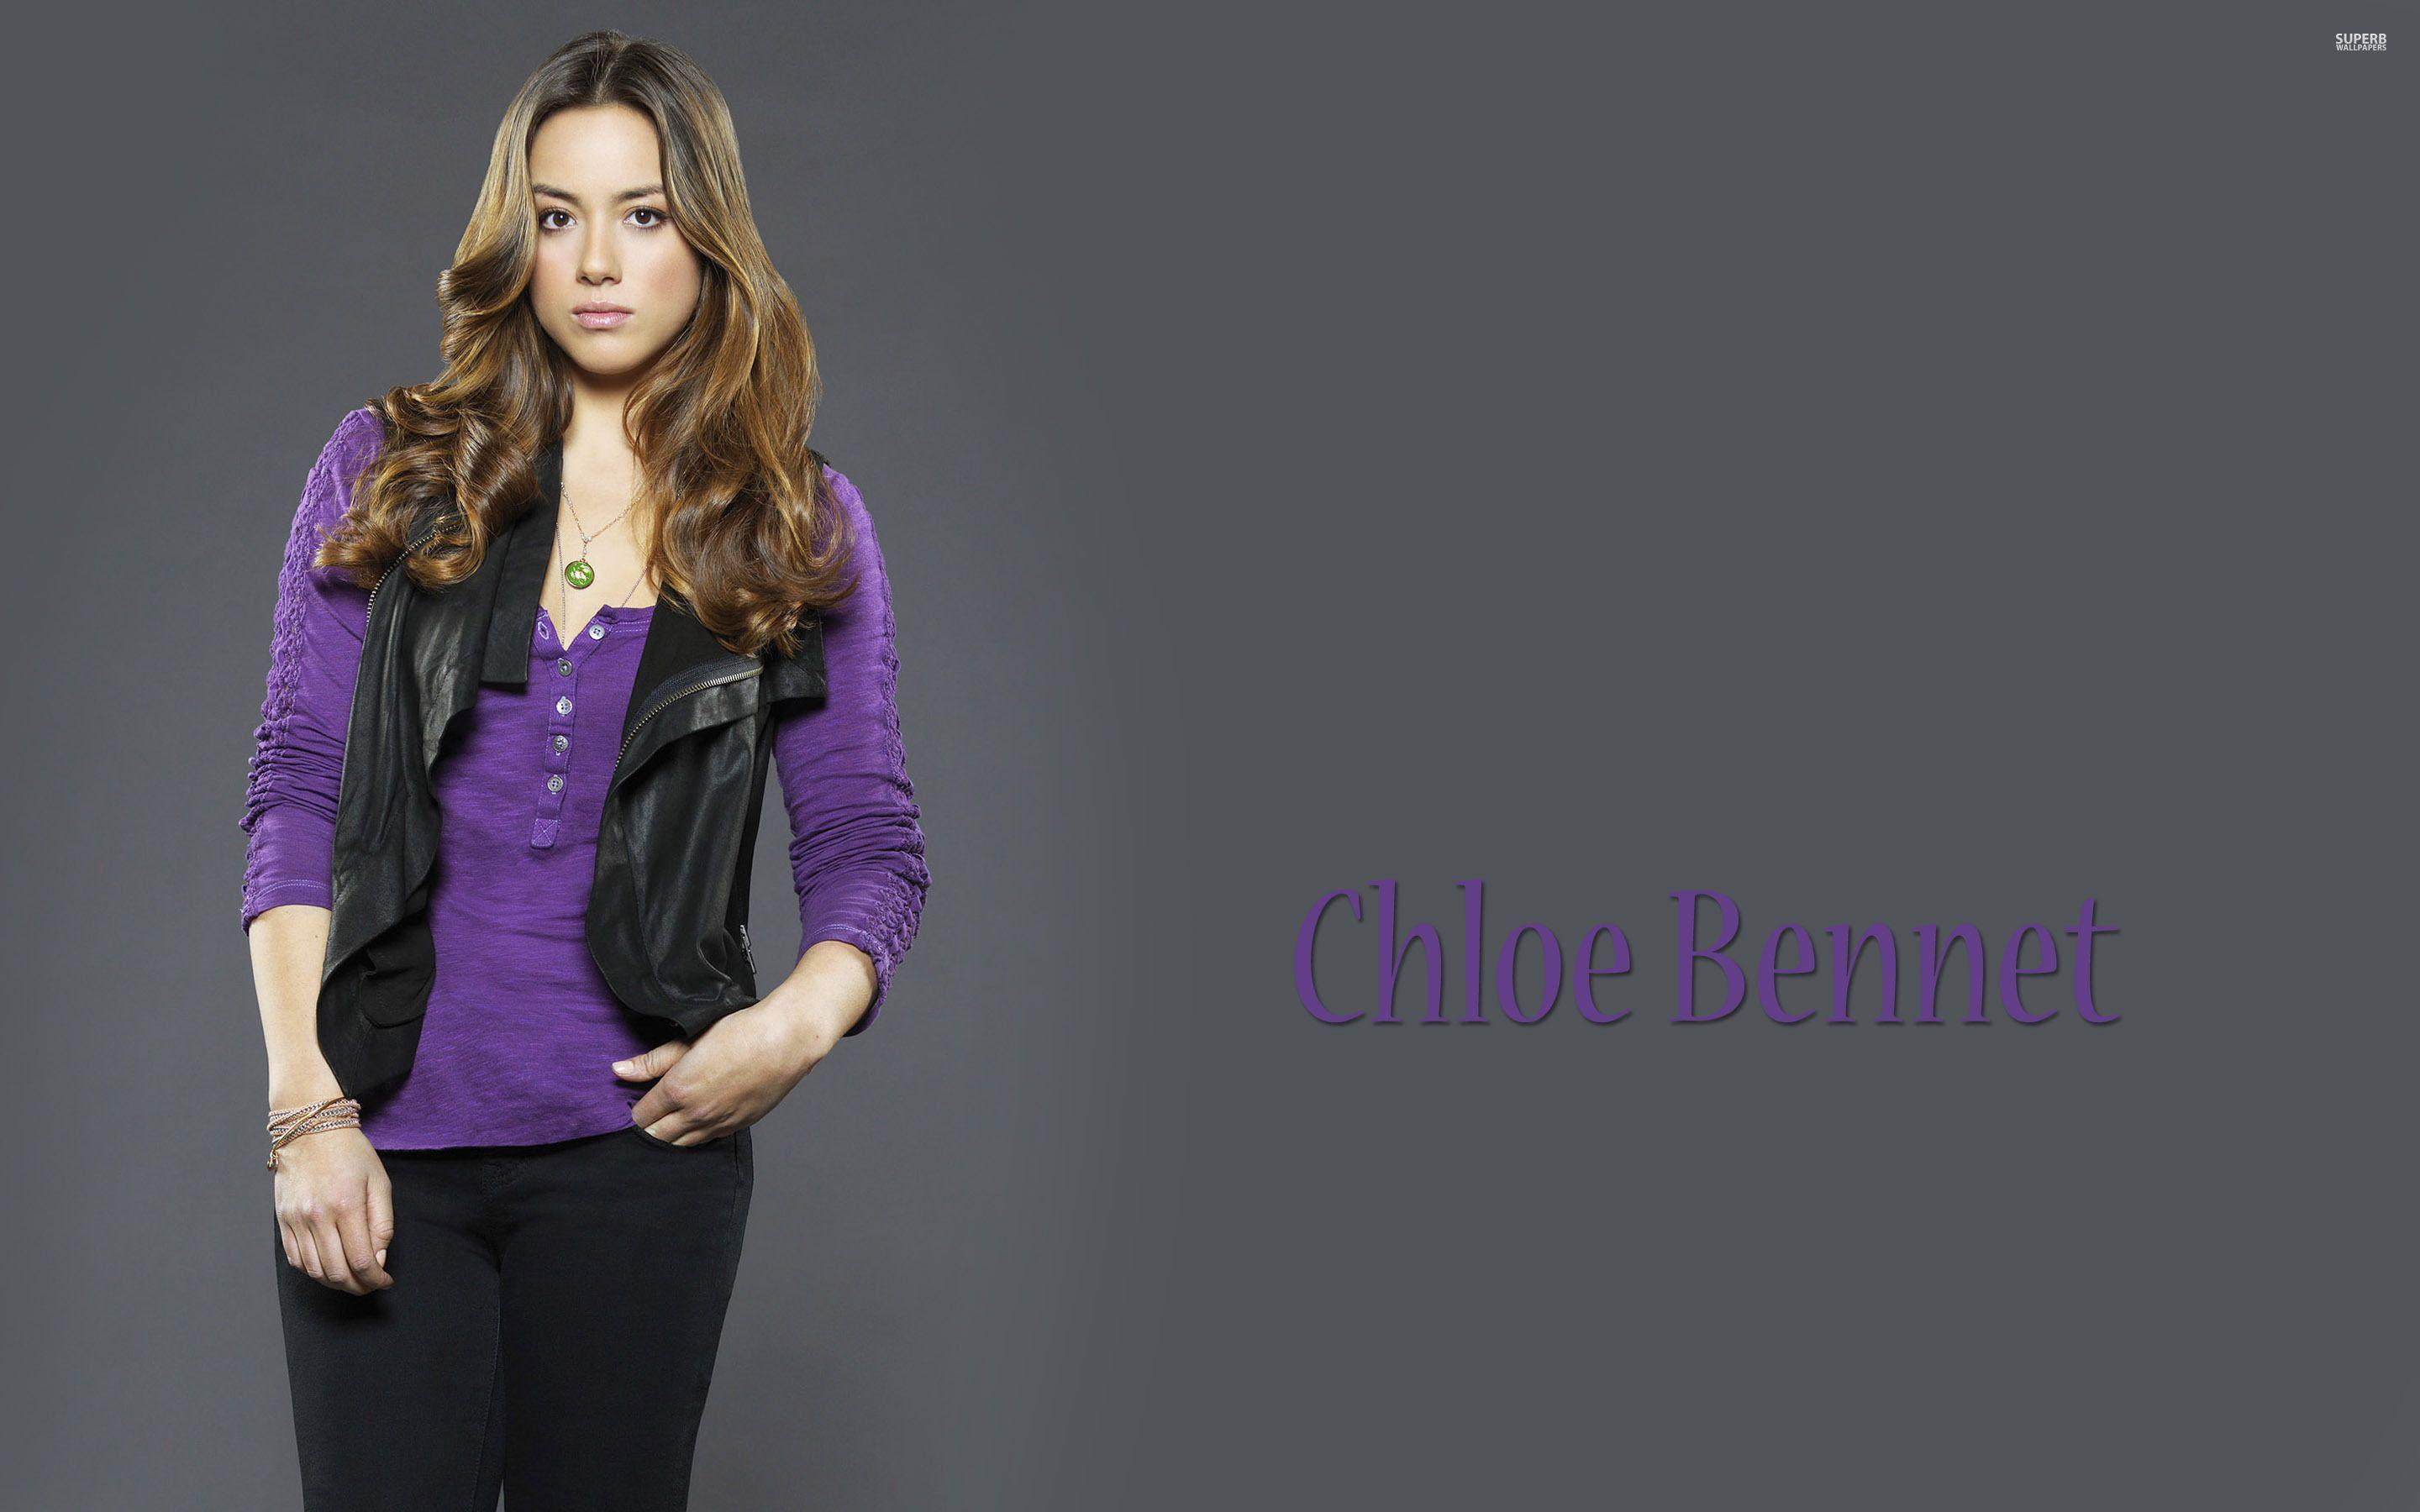 Chloe Bennet Wallpapers Wallpaper Cave